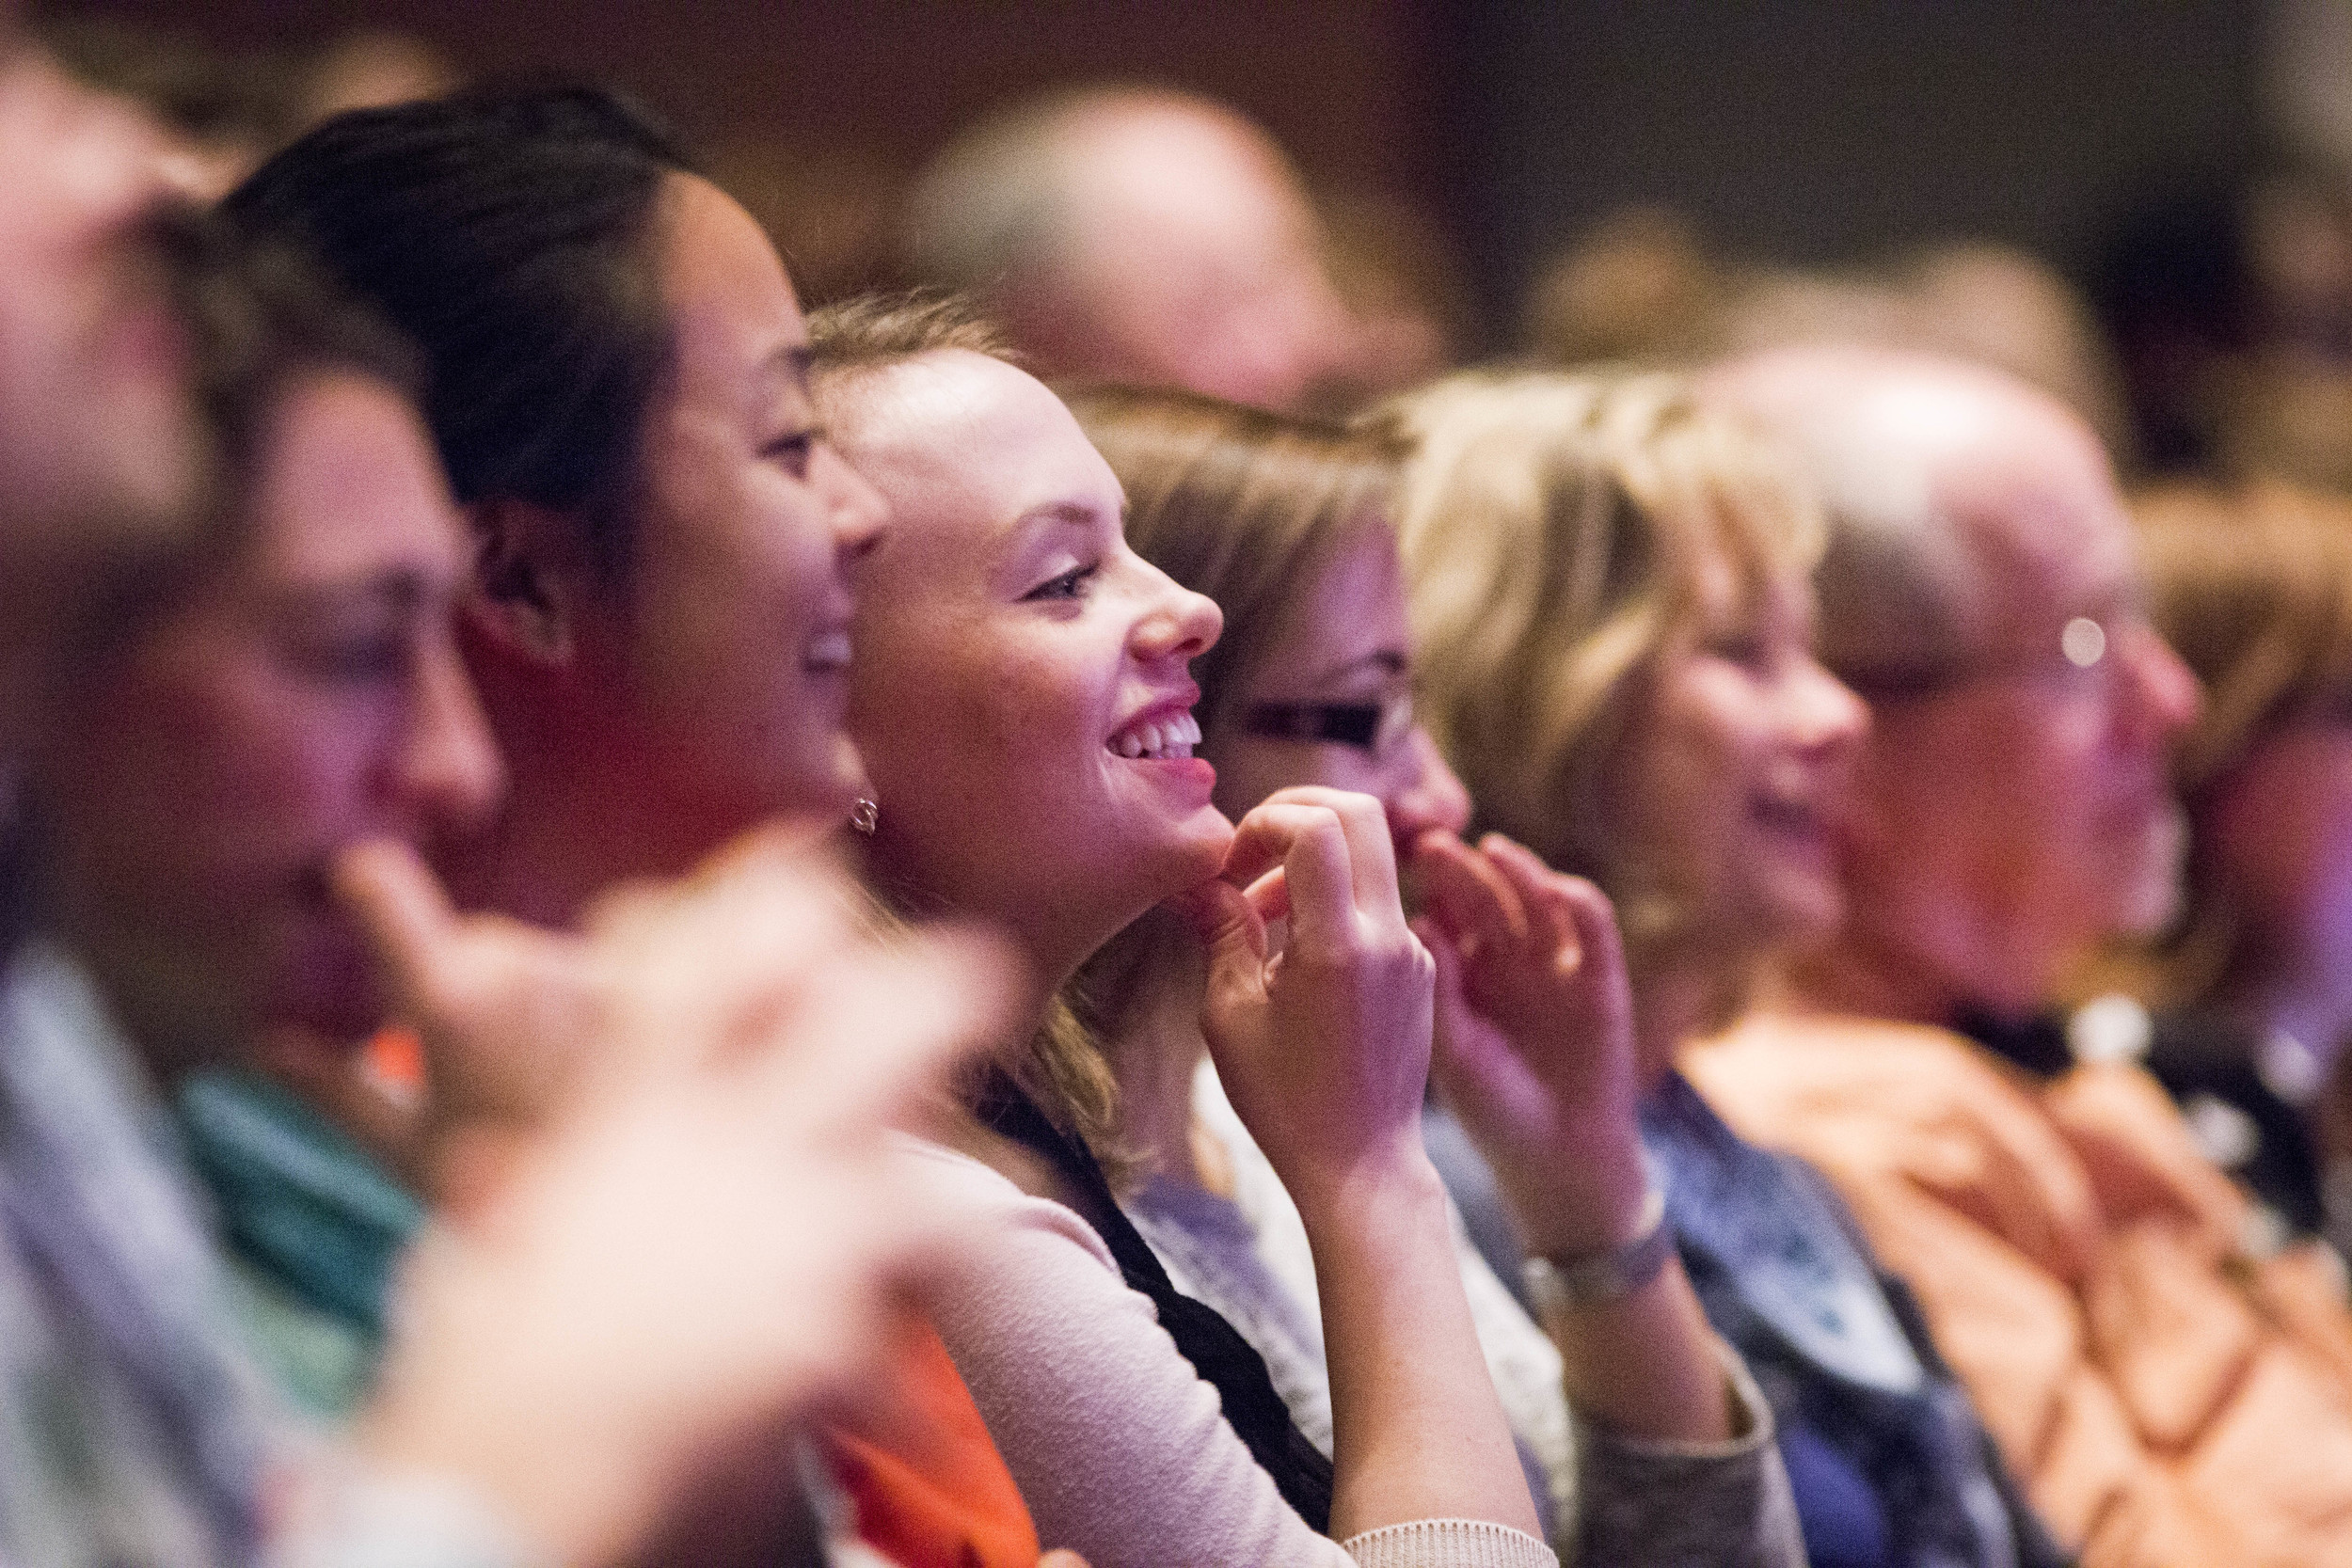 Audience laugh at David Carrr and Jill Abramson's jokes. By Ann Wang